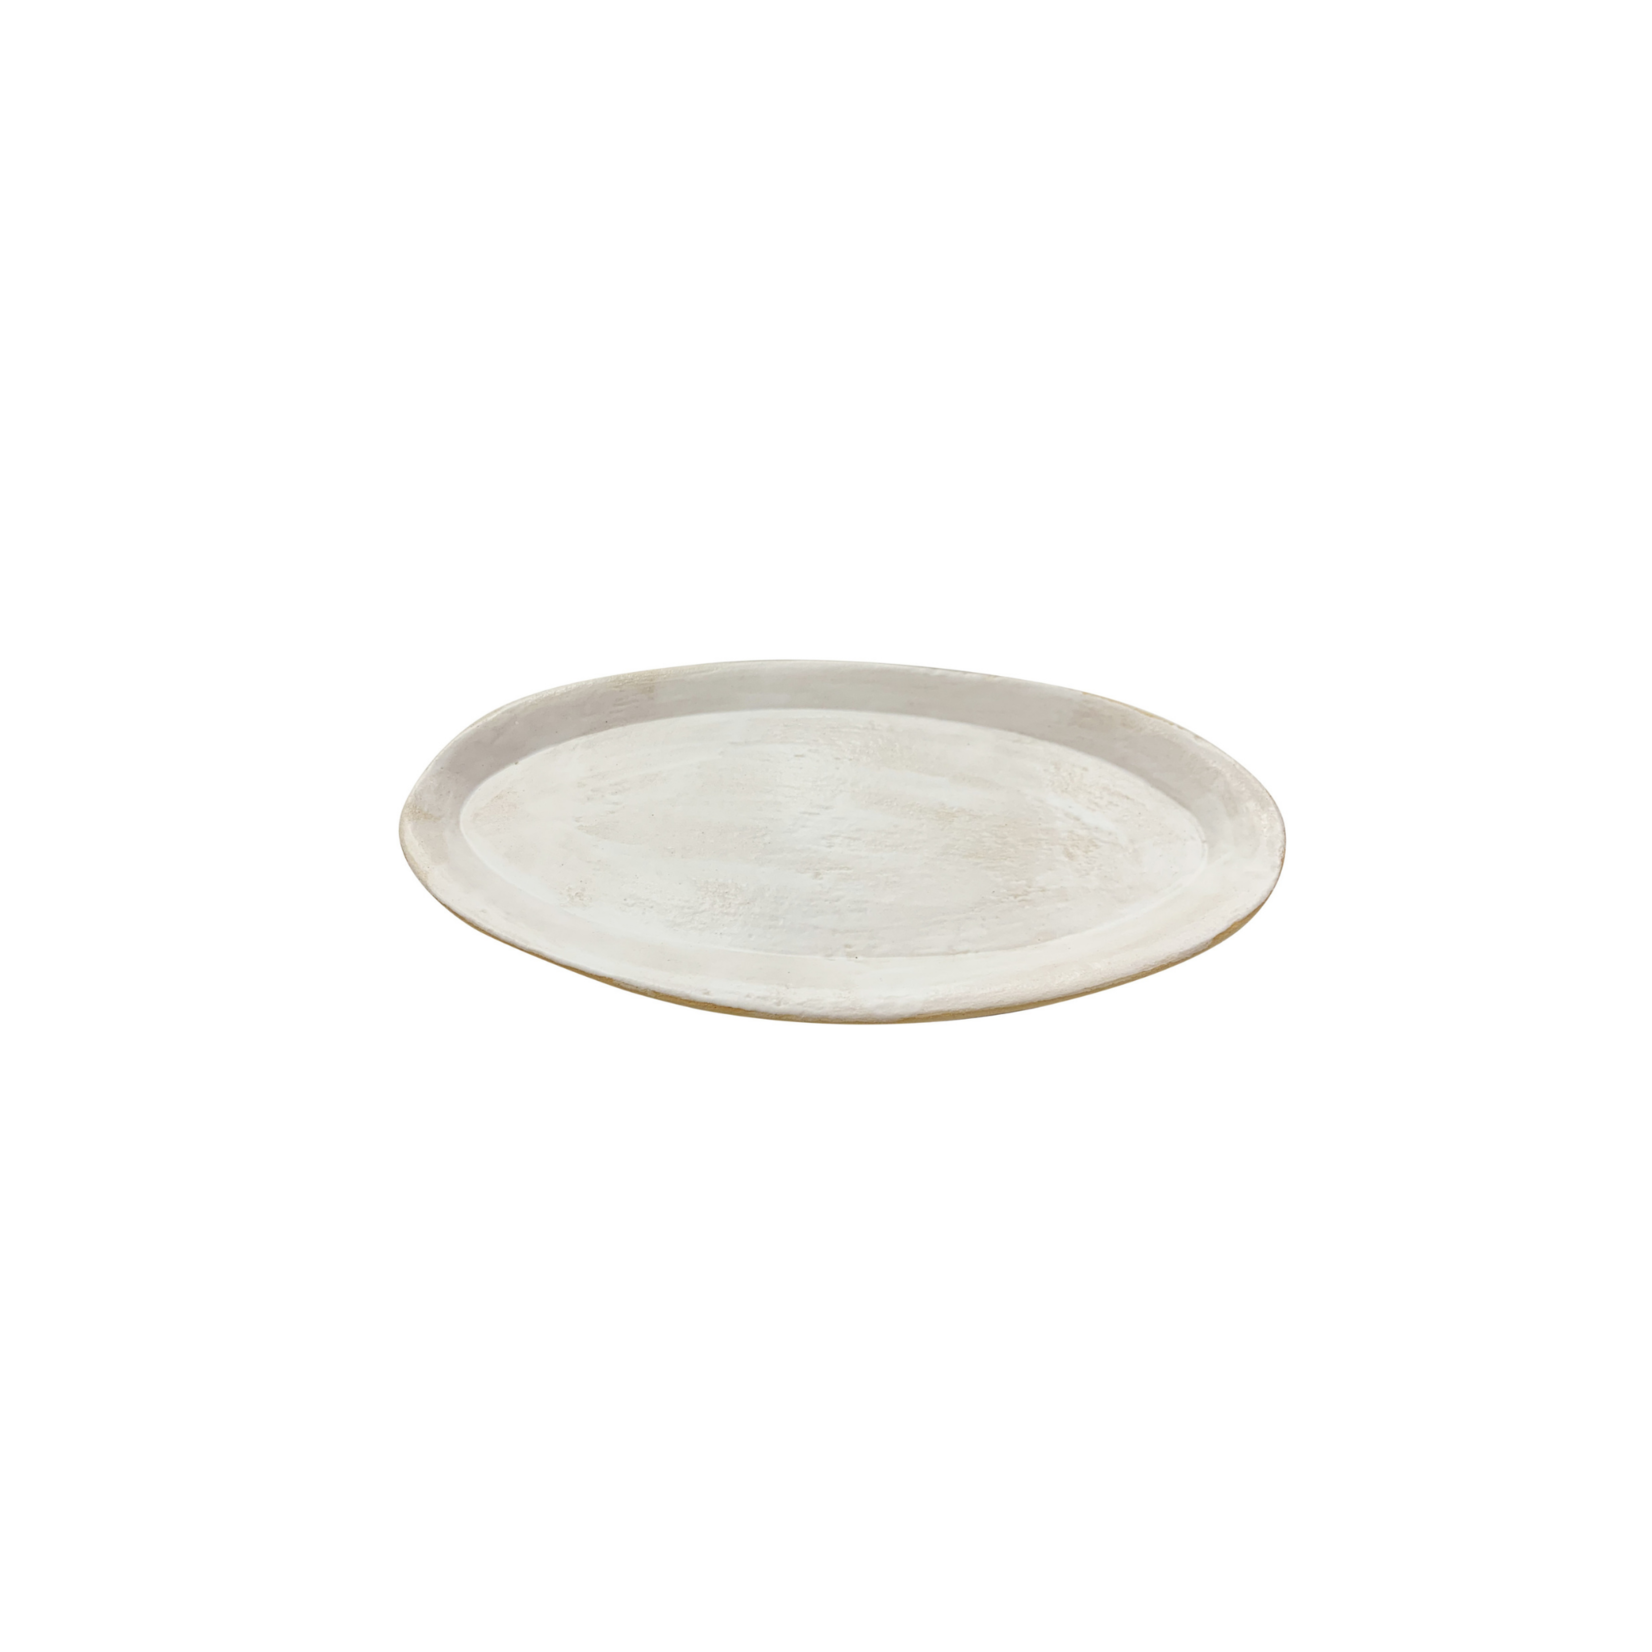 Sloane Angell Clay Platter Oval